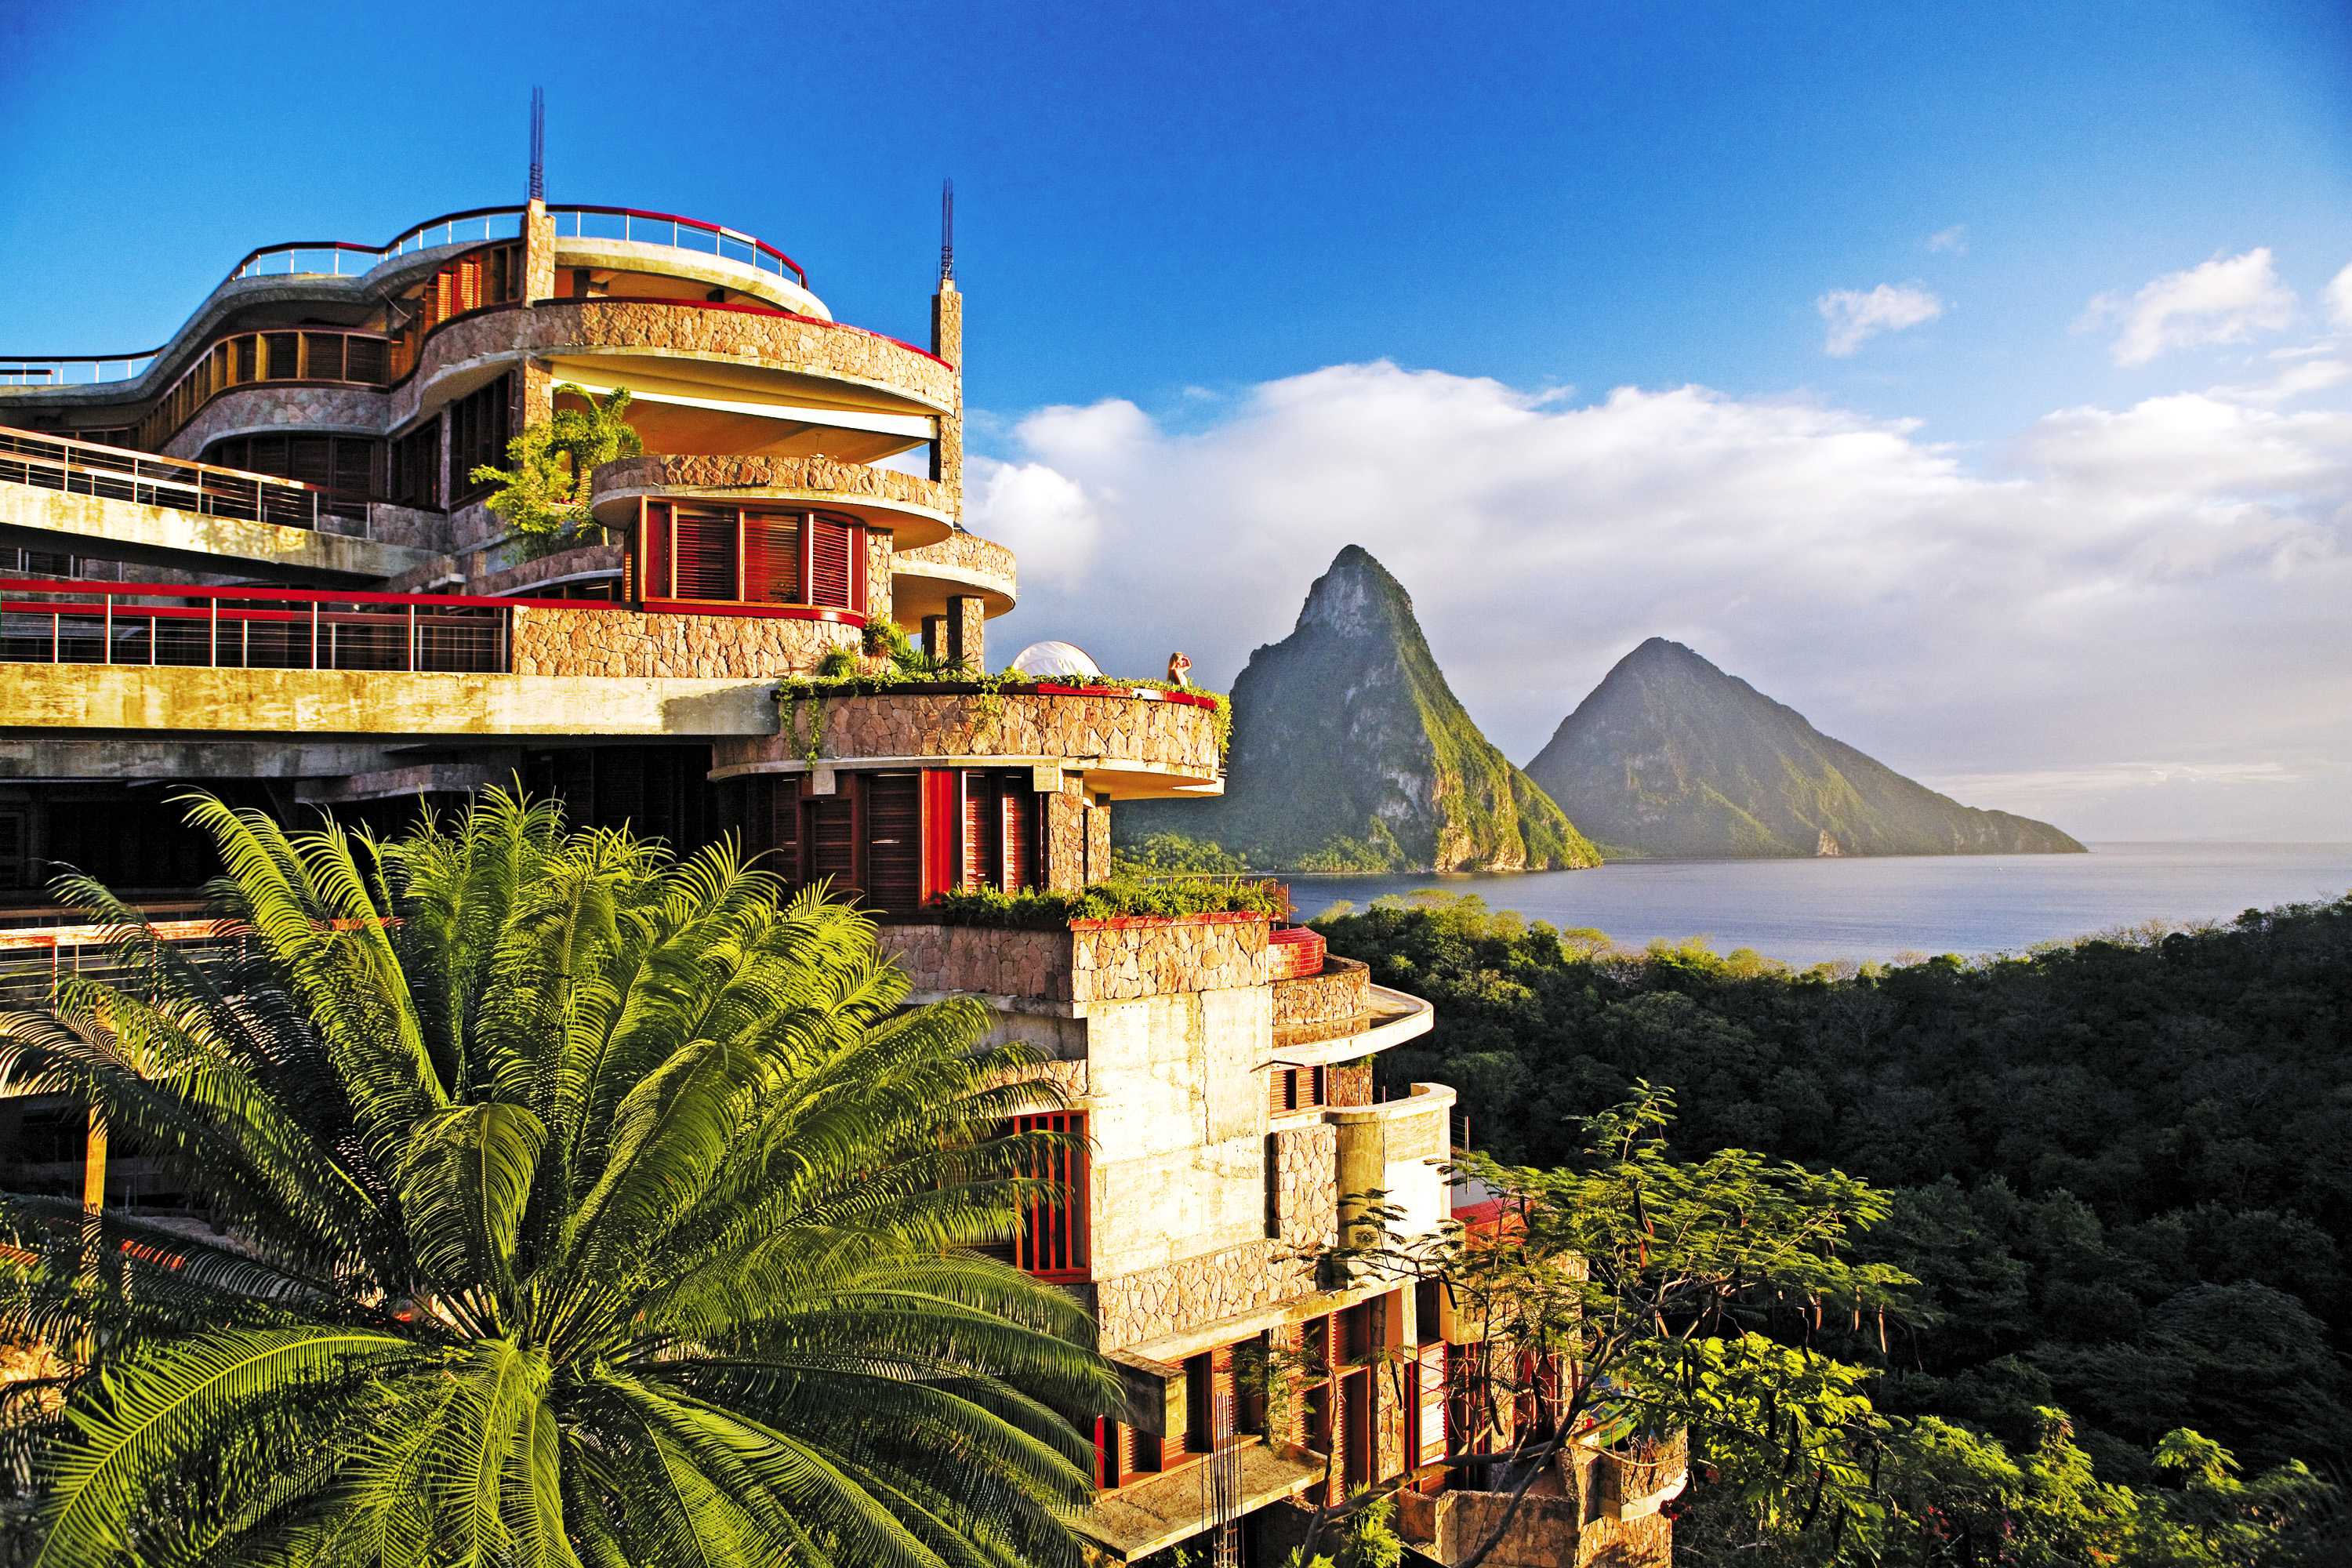 This image: The bold architectural design of Jade Mountain, St Lucia.